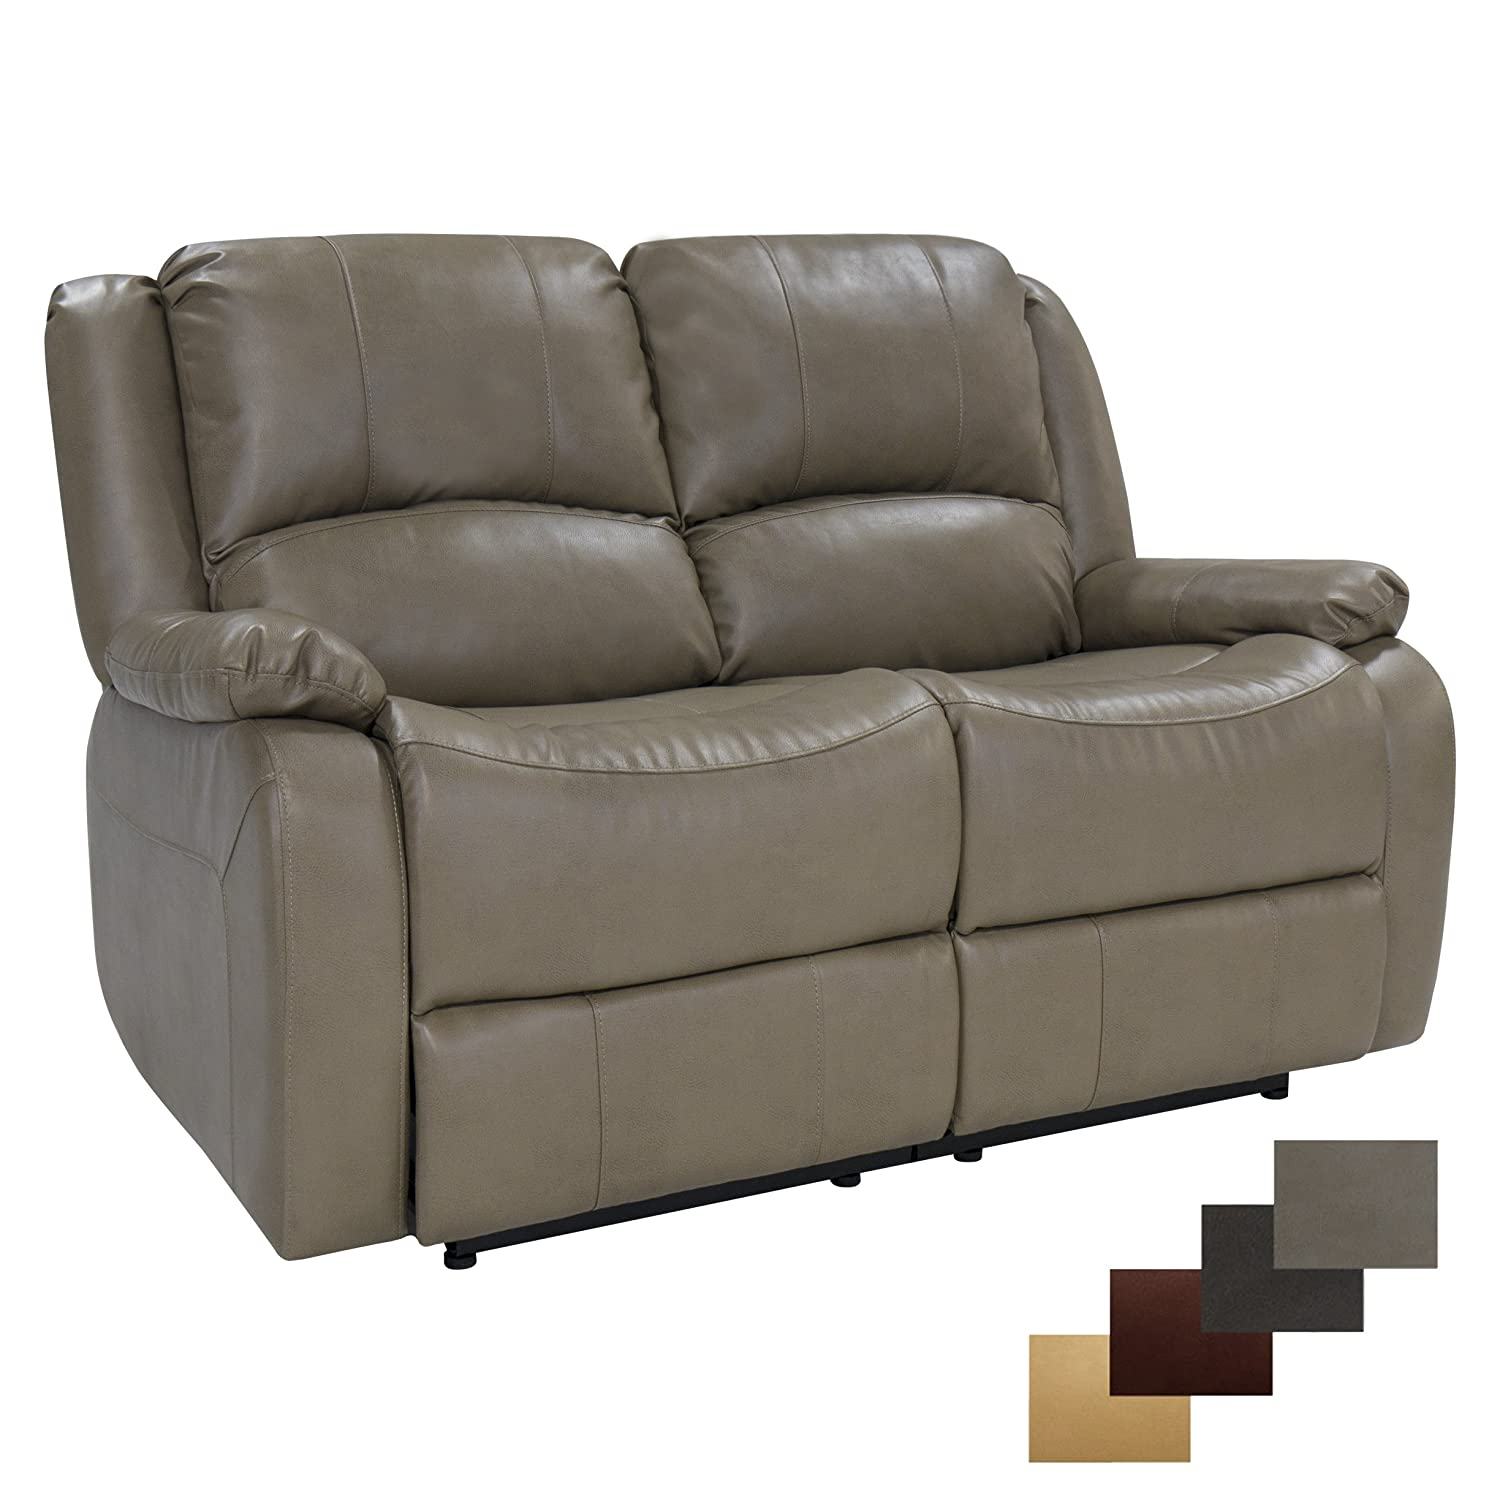 recliner email image a com via high download double product flexsteel resolution share chicago